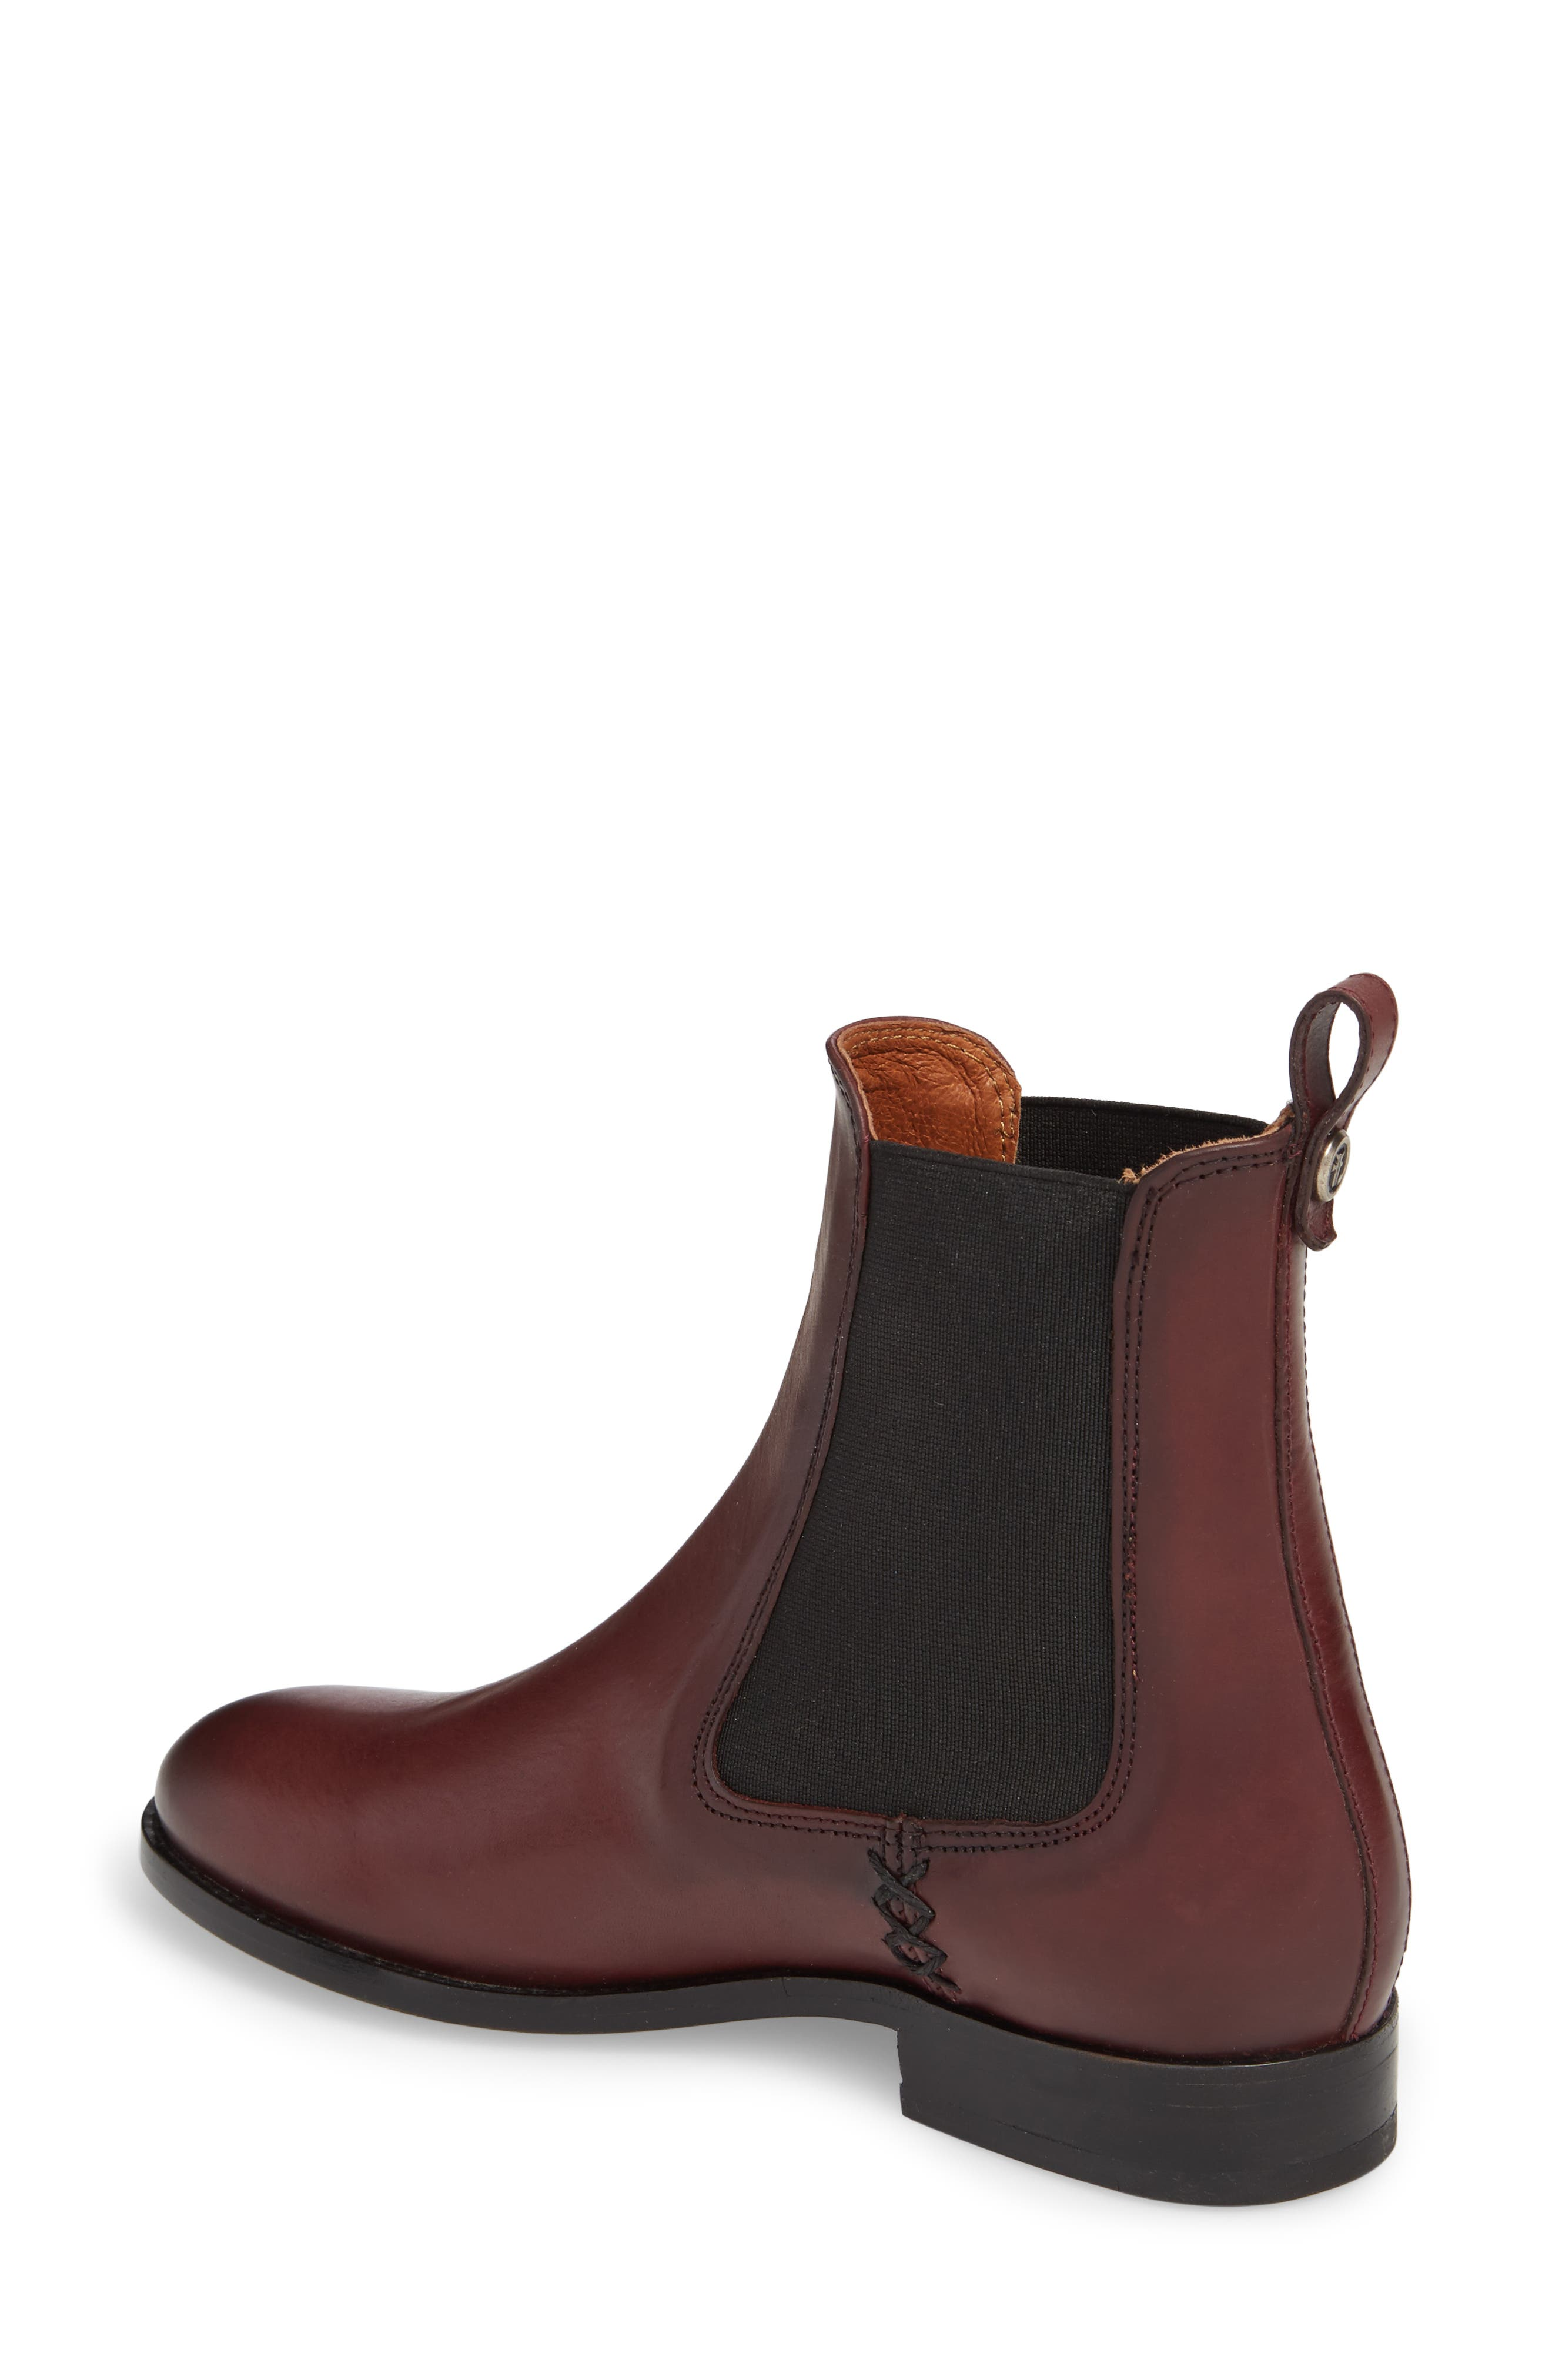 Melissa Chelsea Boot,                             Alternate thumbnail 2, color,                             Wine